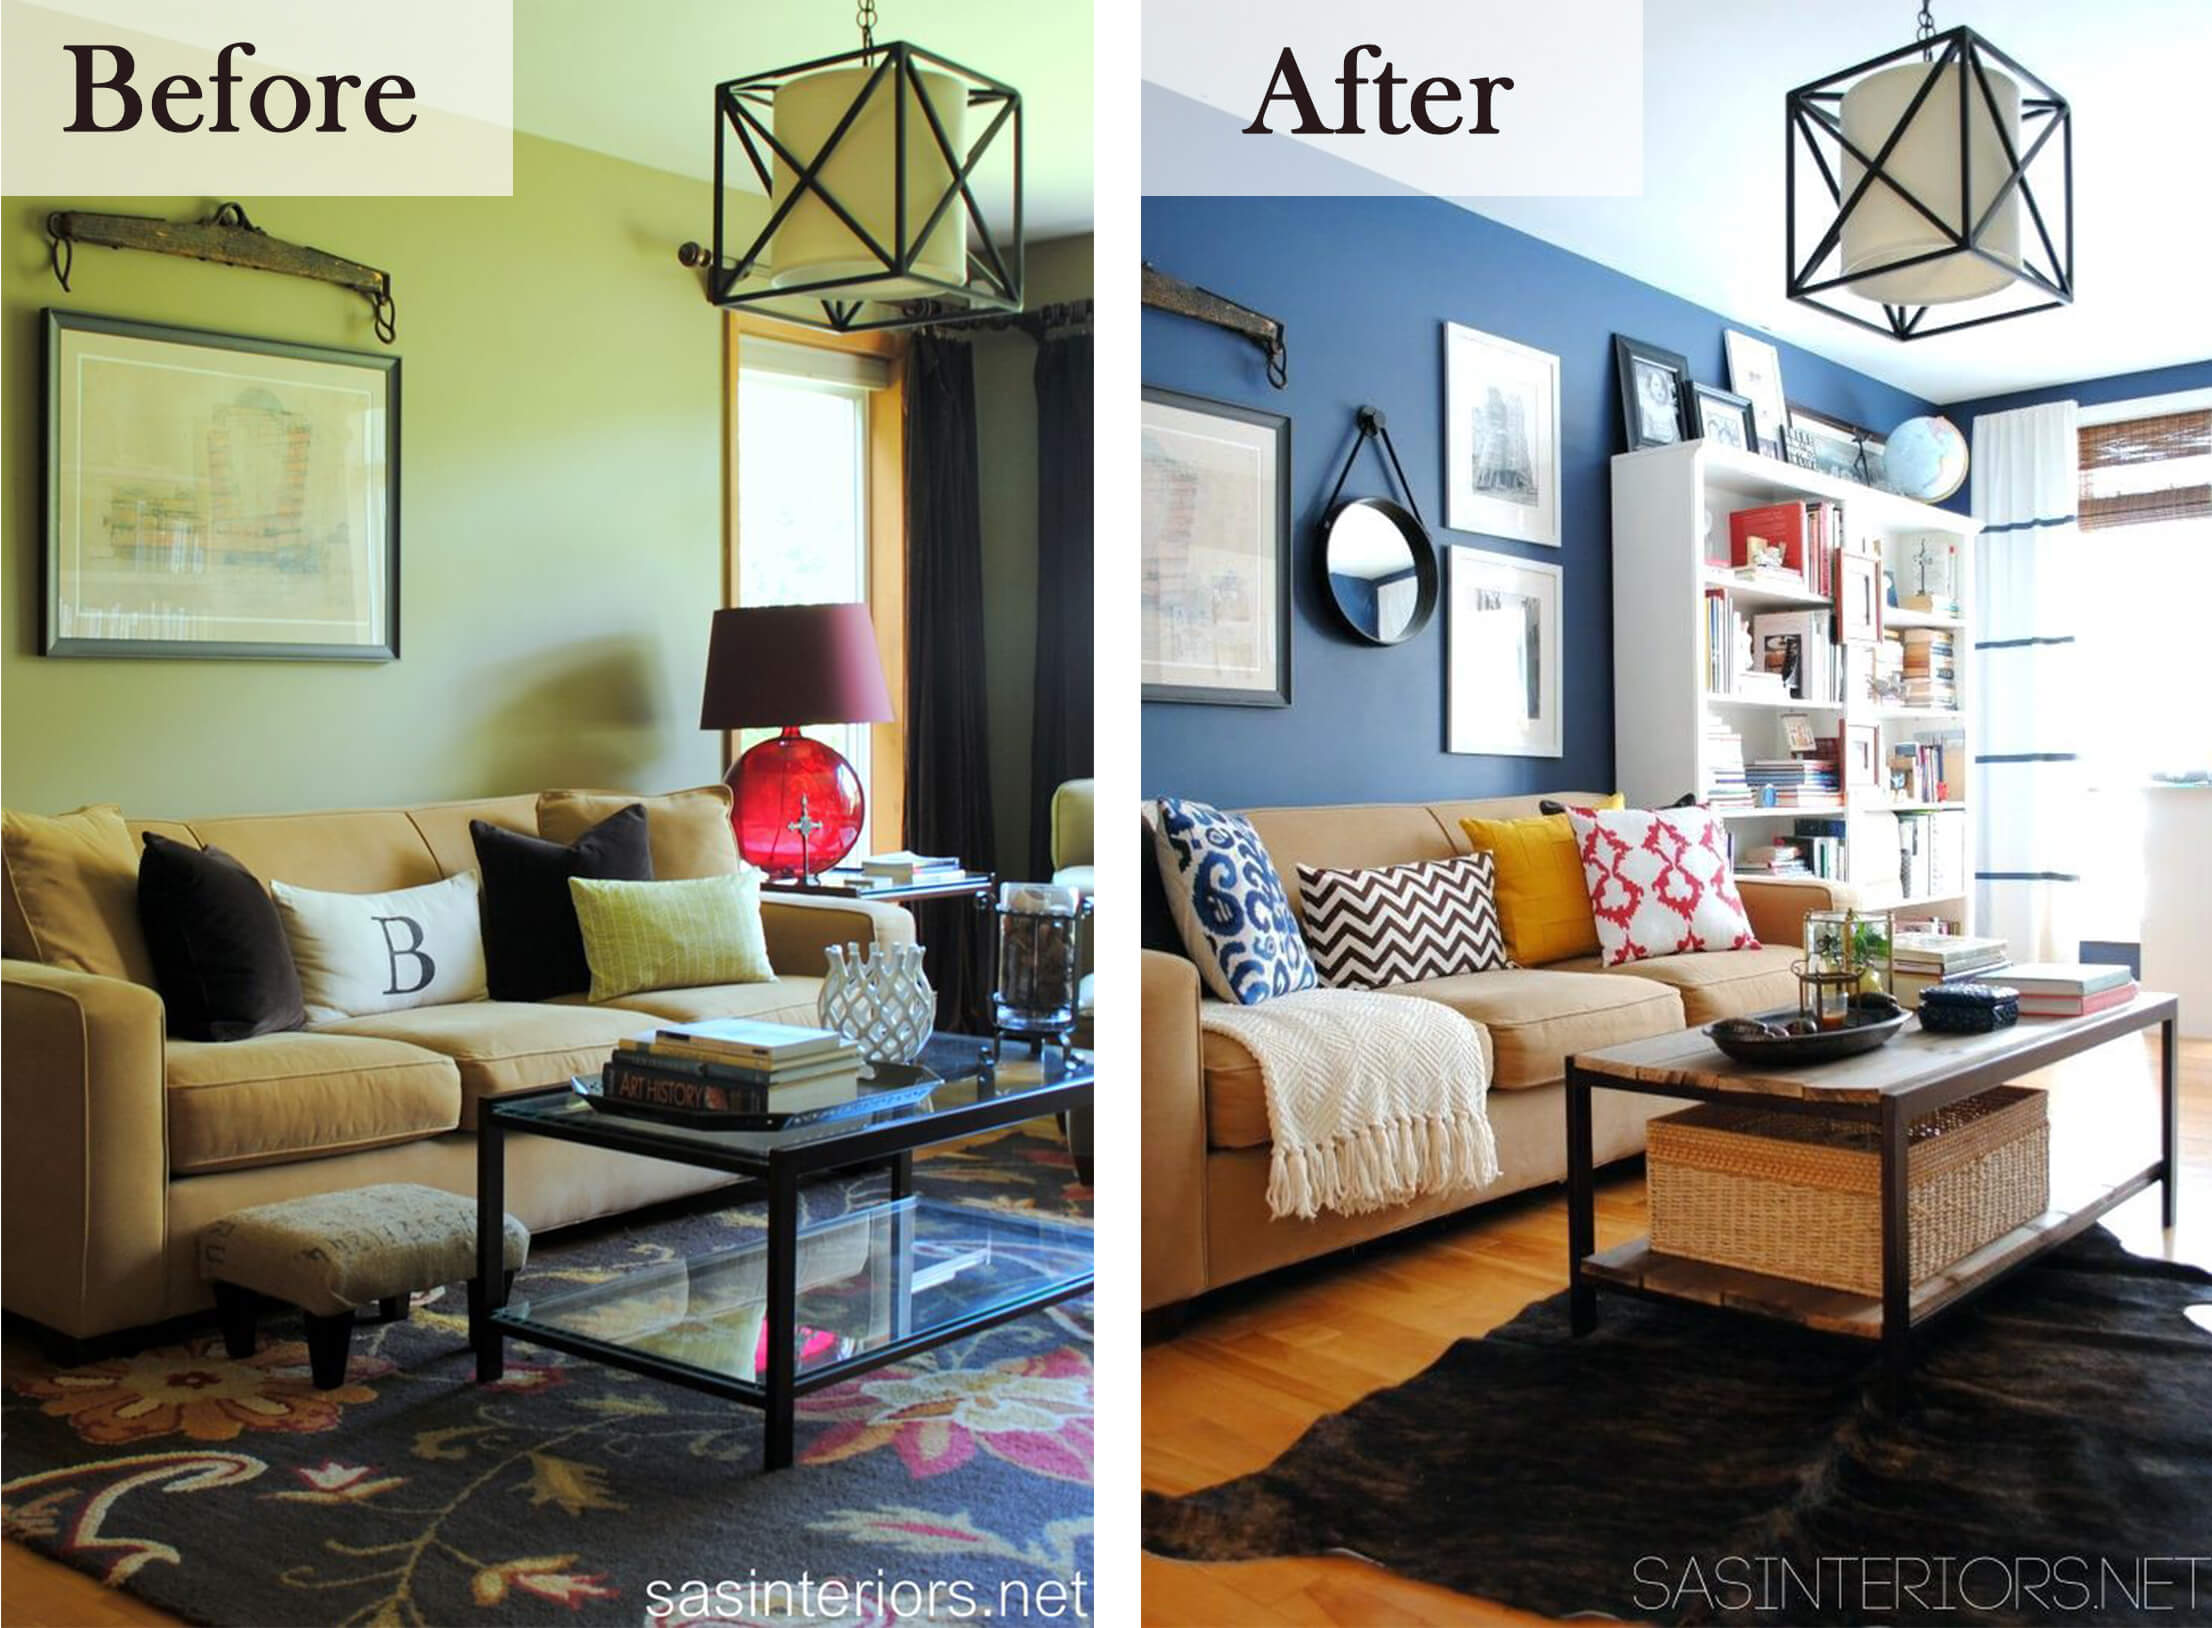 26 Best Budget Friendly Living Room Makeover Ideas For 2017: living room makeover ideas